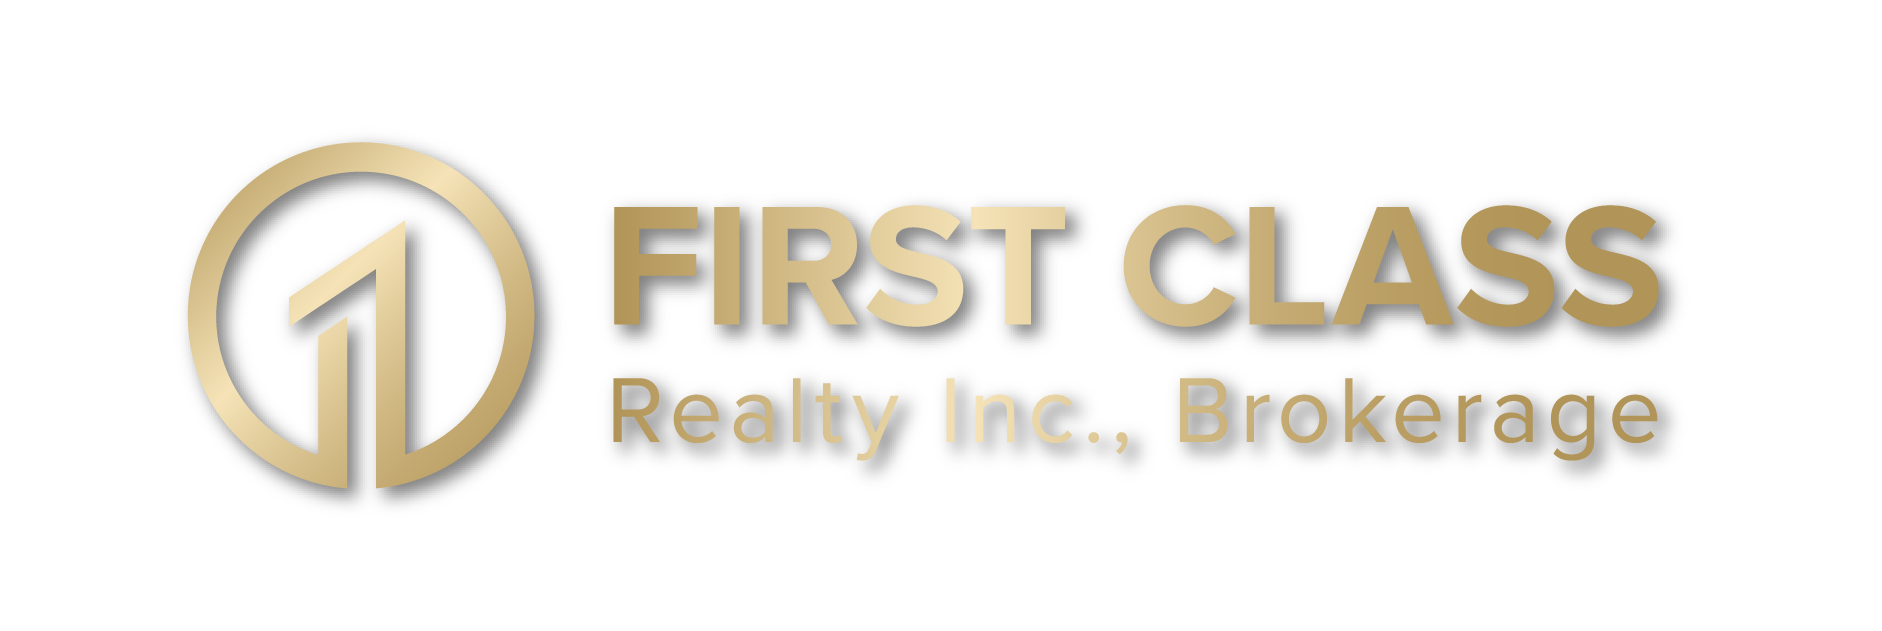 First Class Logo With drop shadow